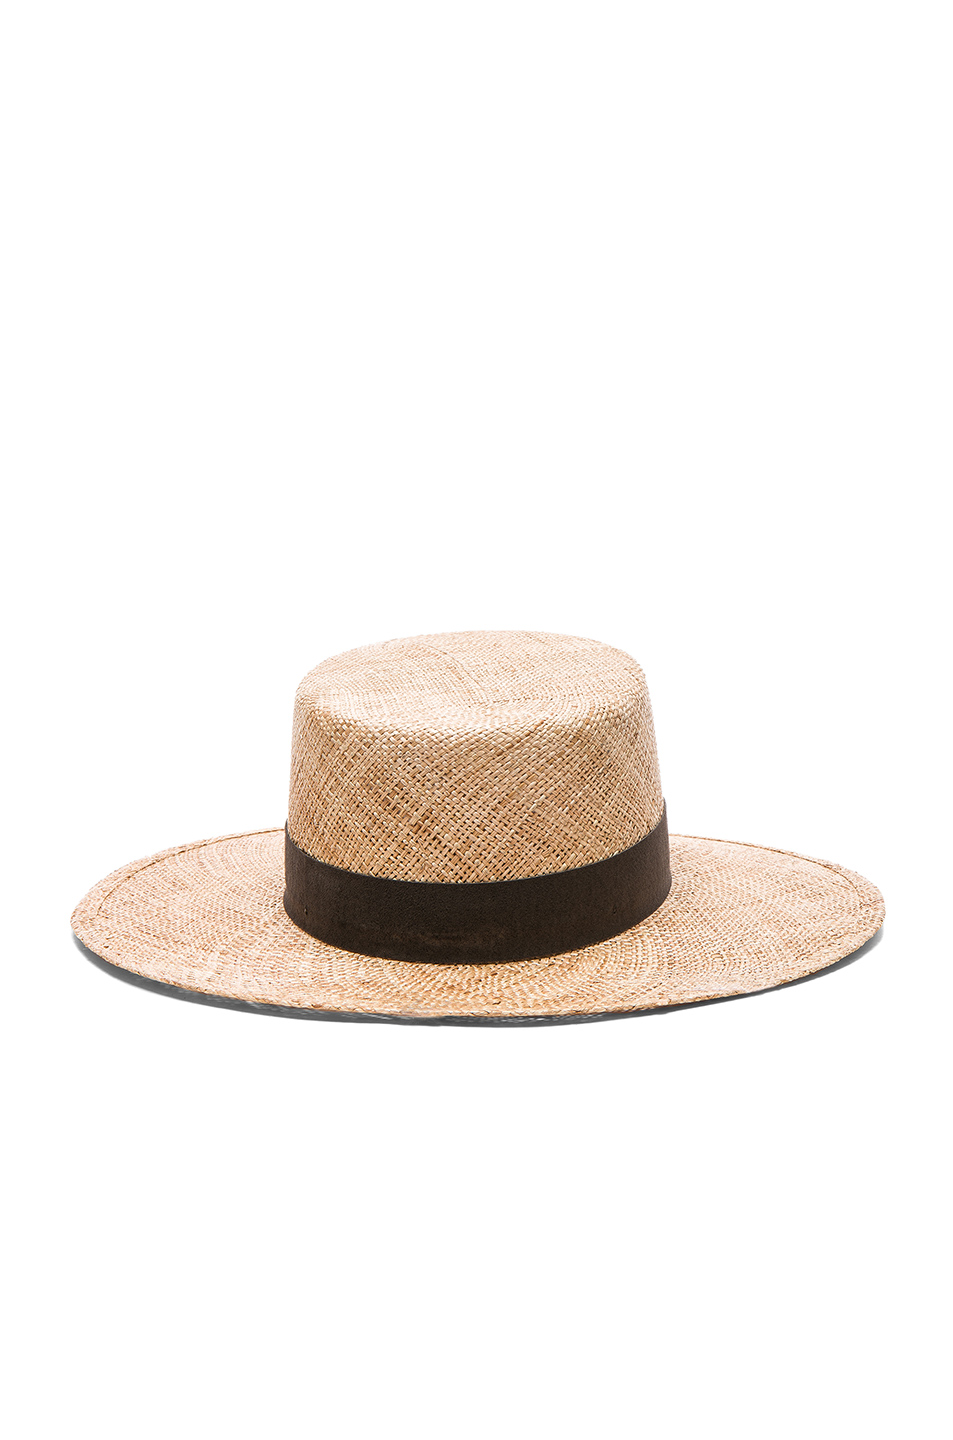 Janessa Leone Jade Bolero Hat in Natural | FWRD